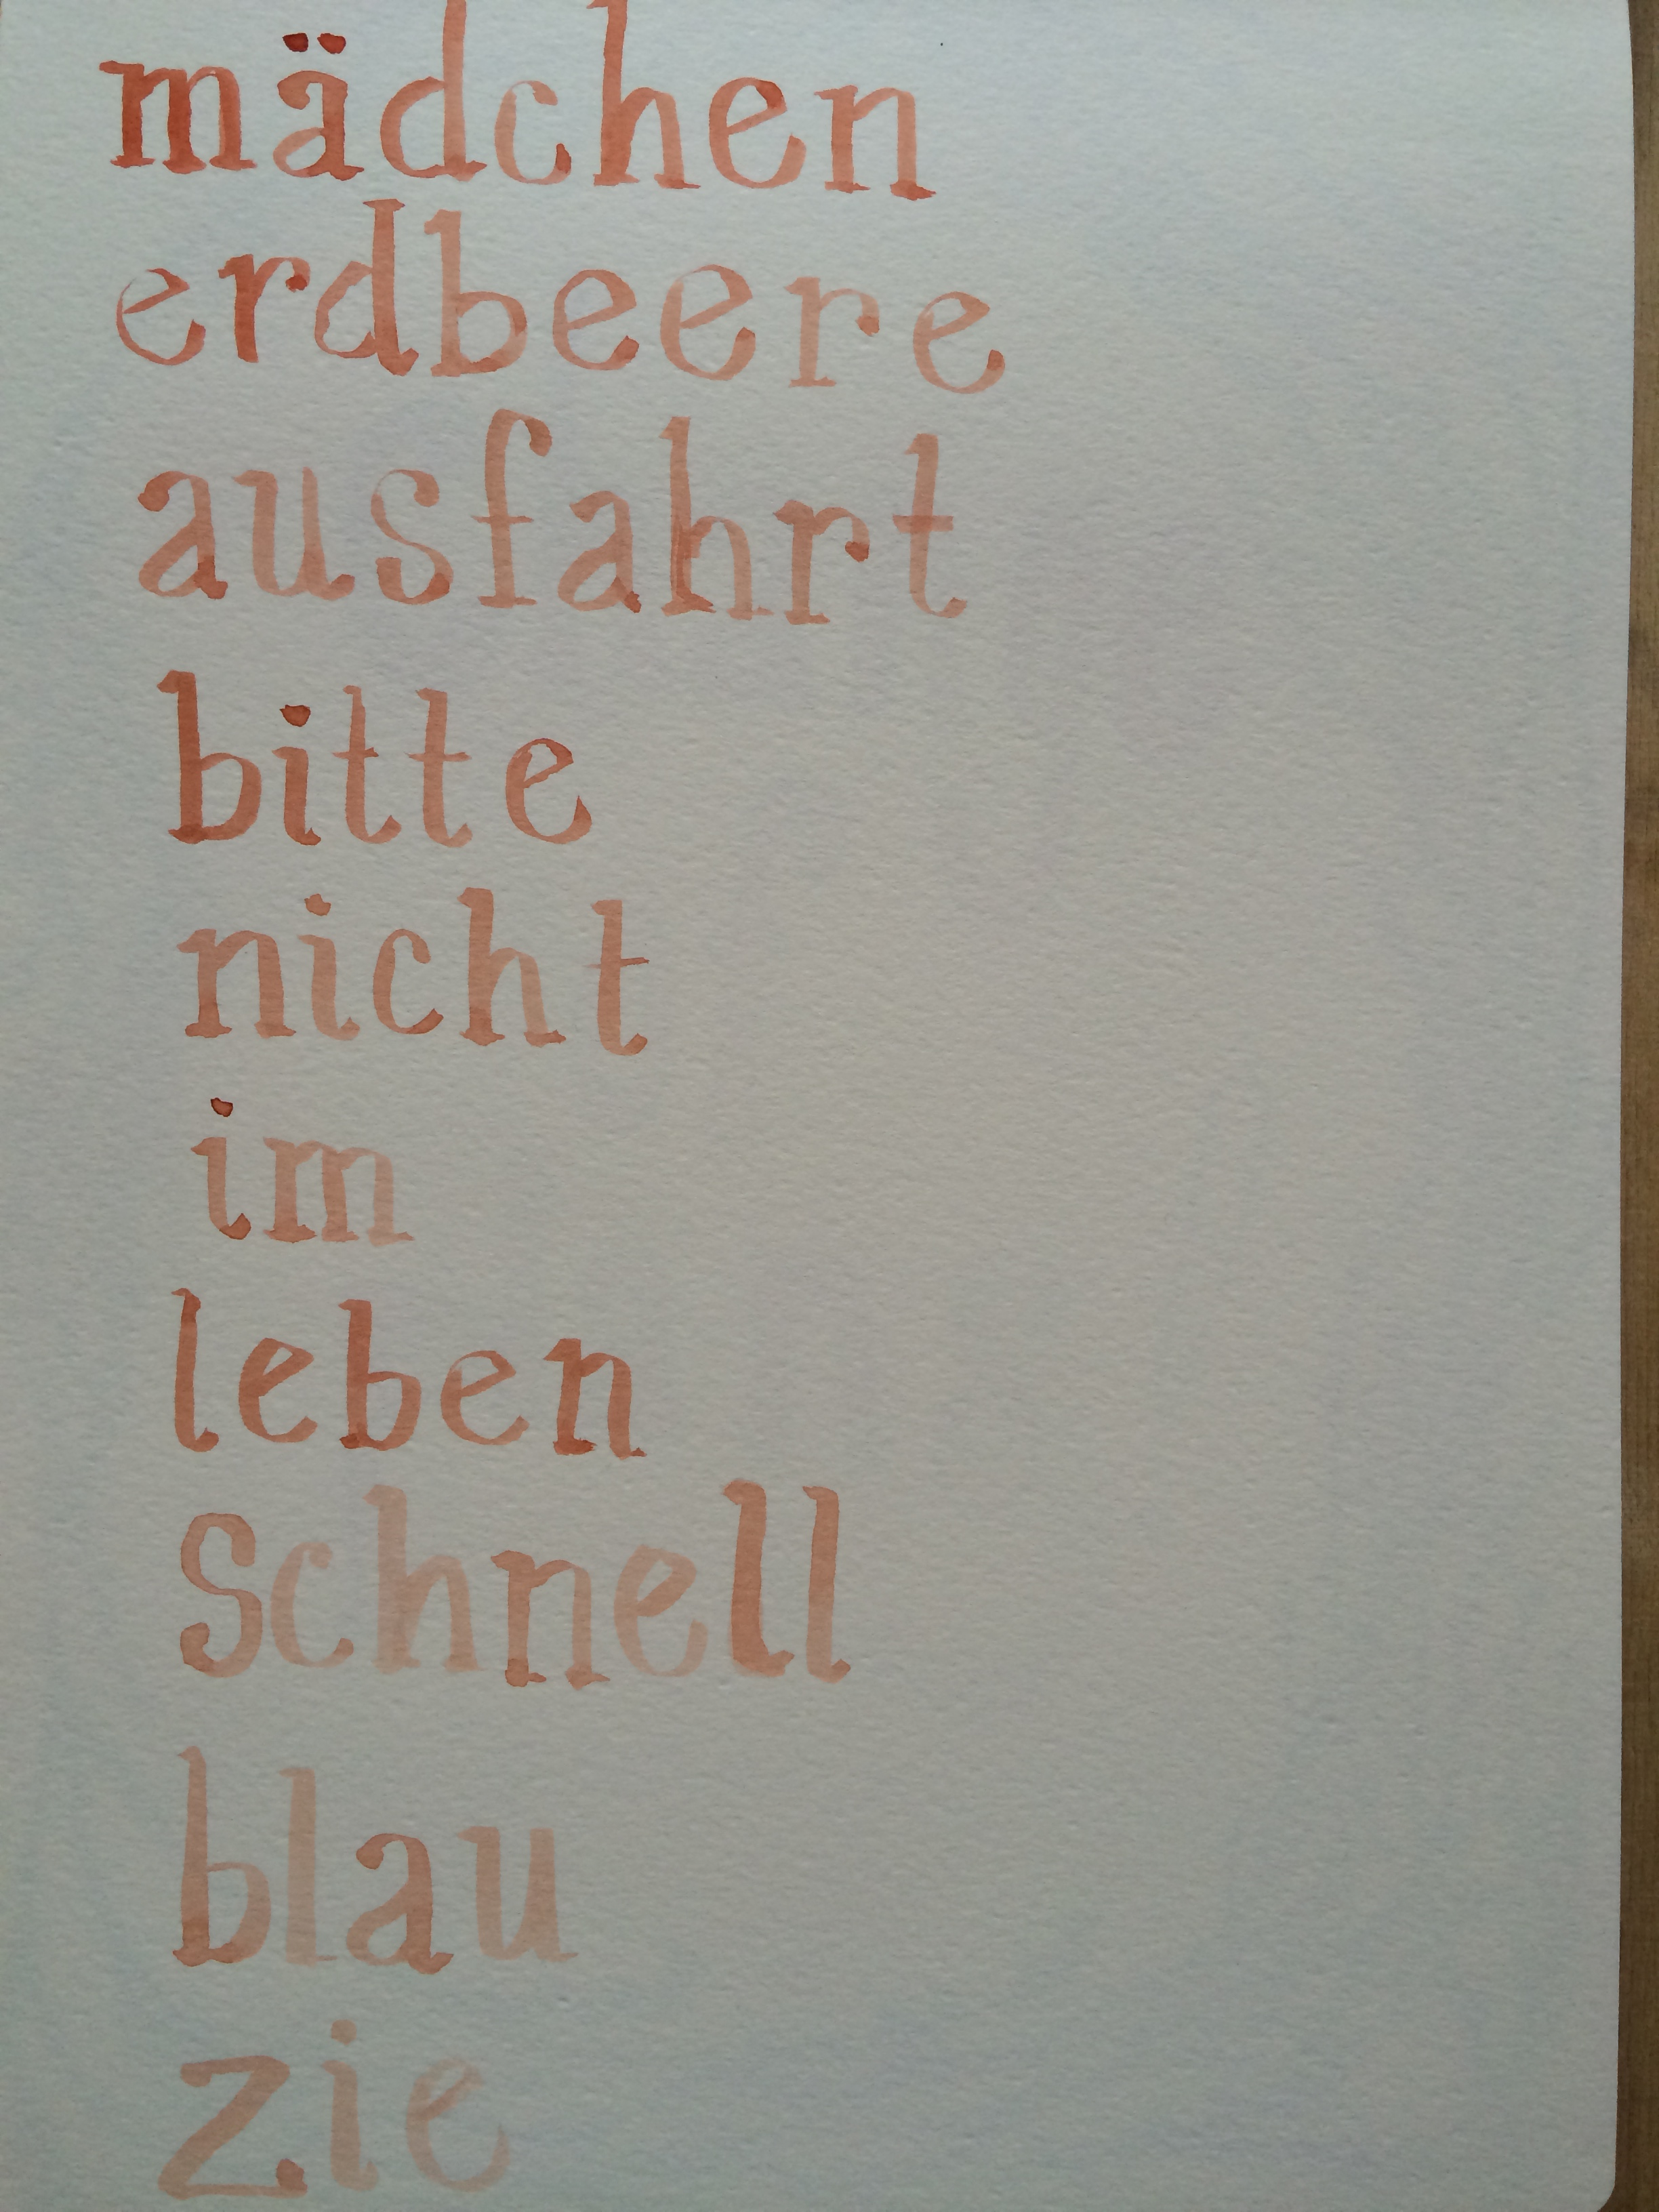 8/4/14  German words I know